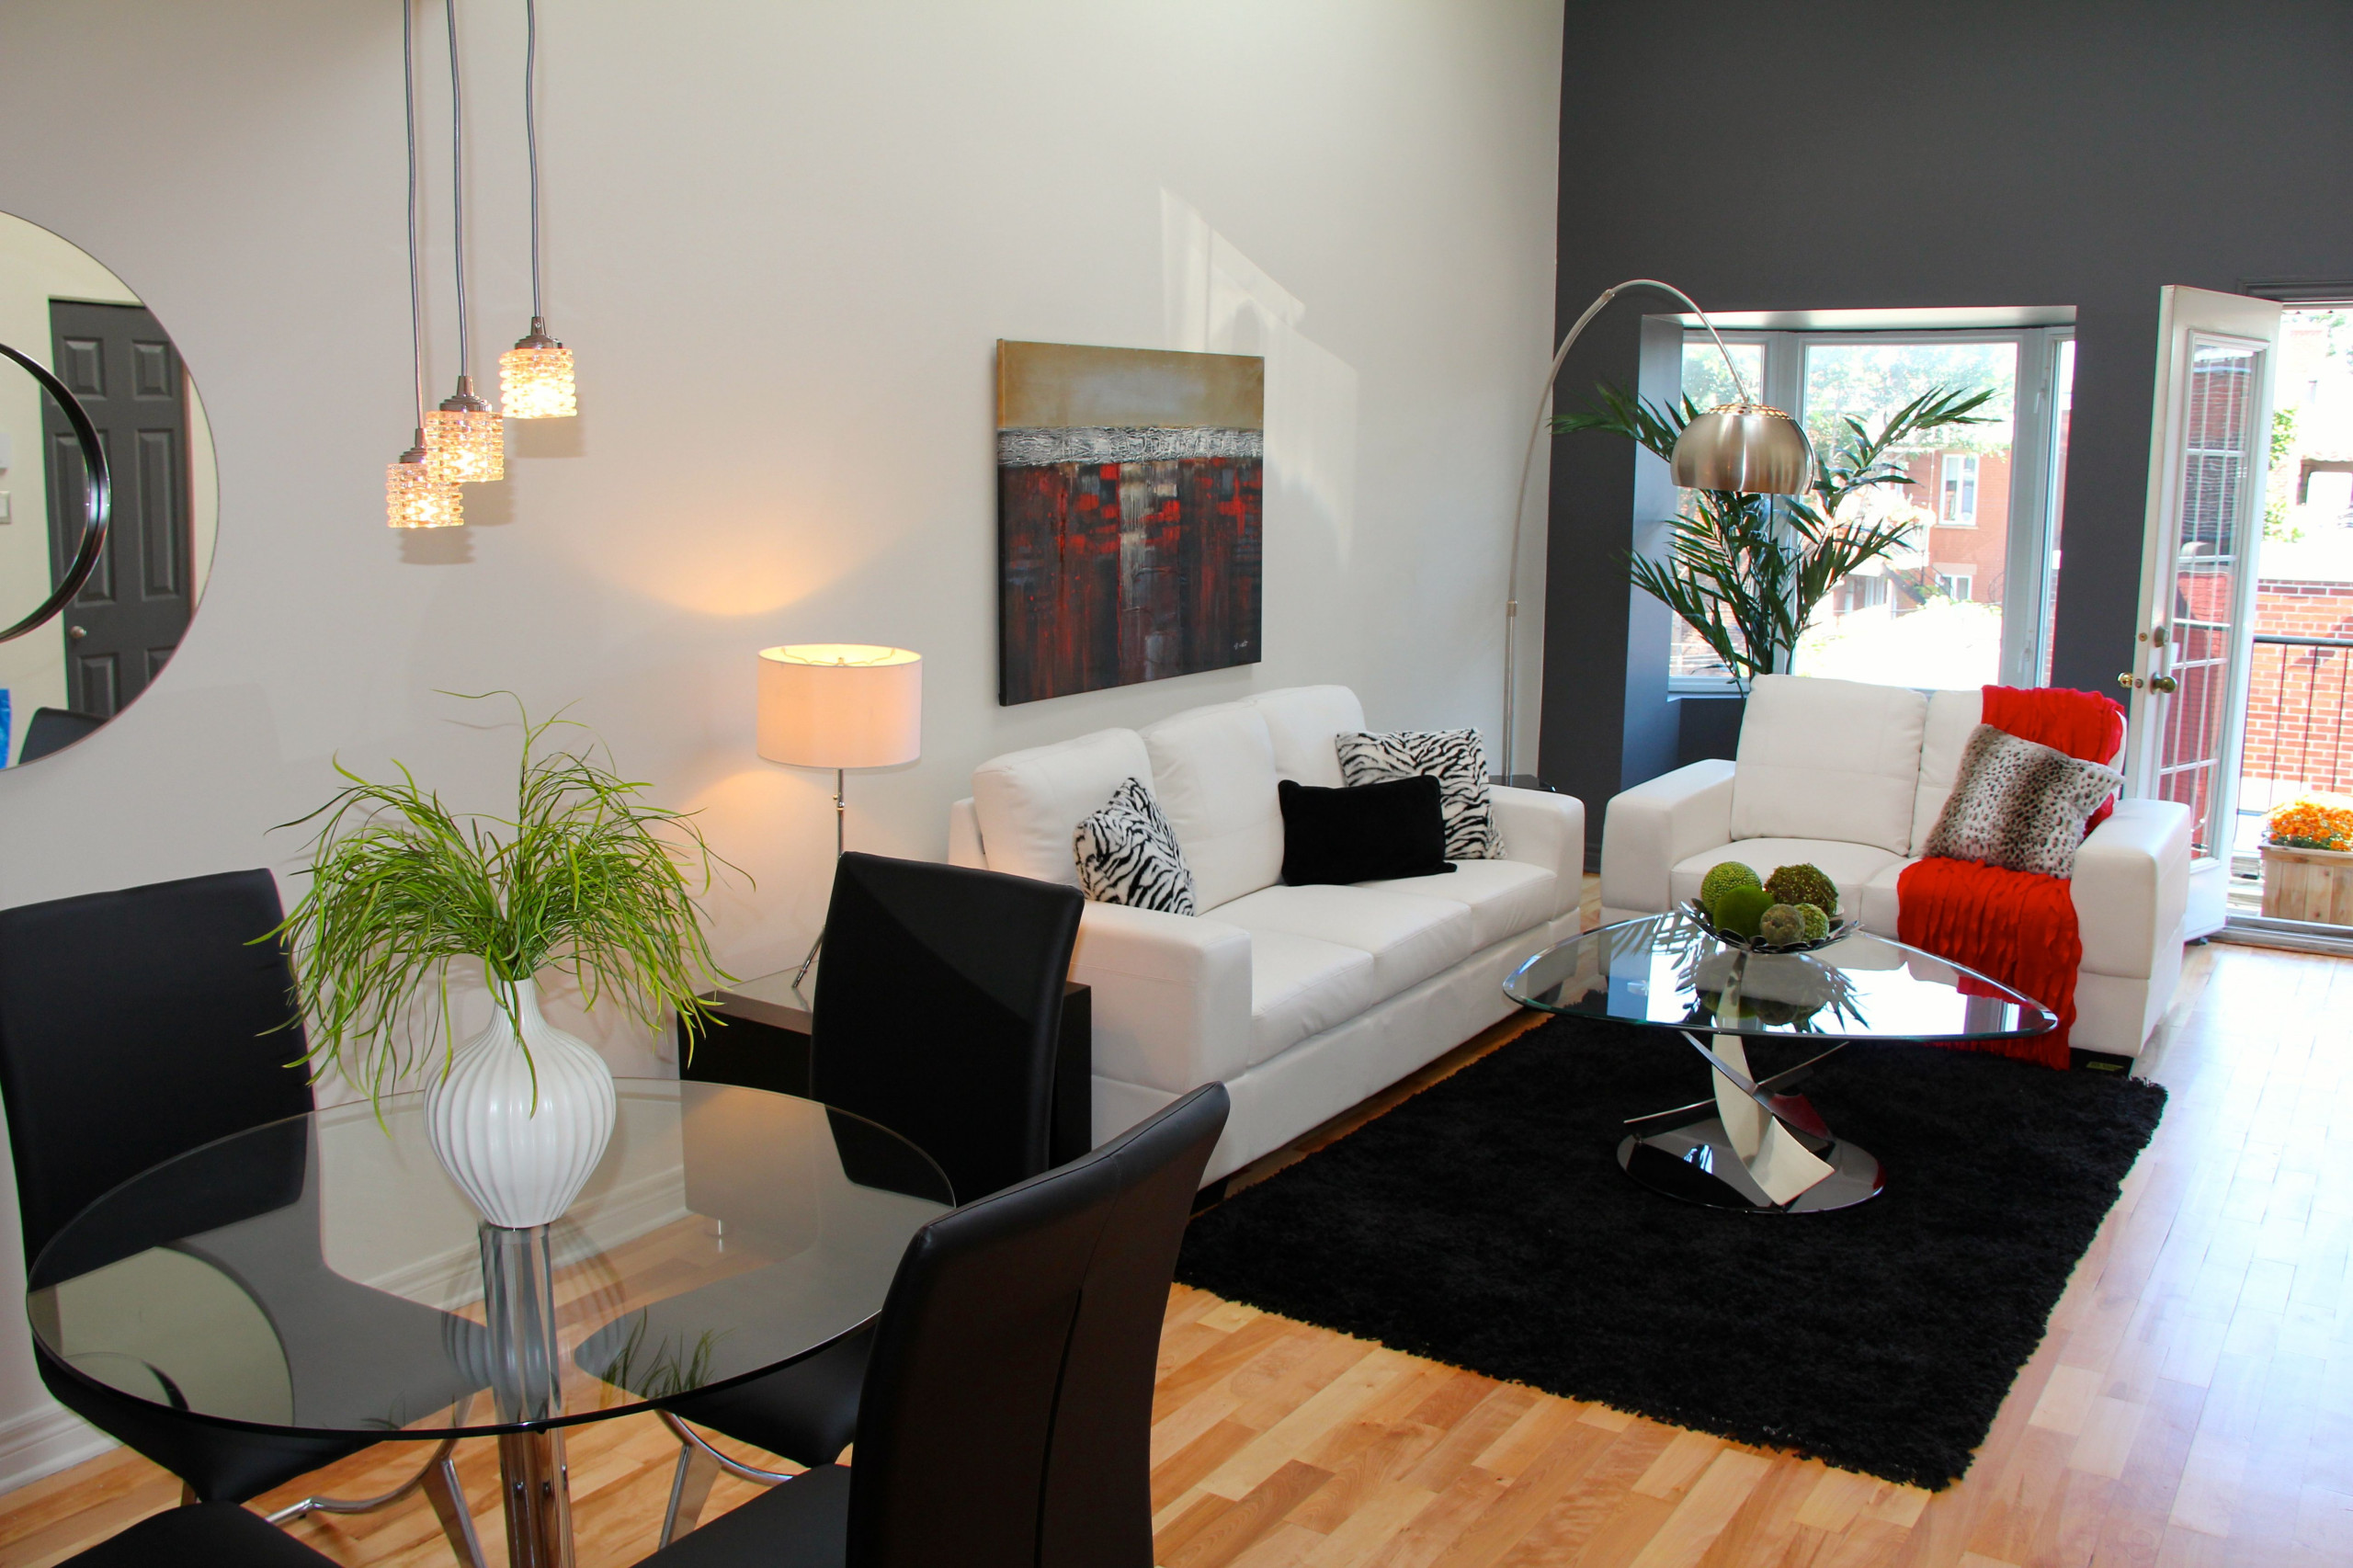 Home Staging - Vacant Condo